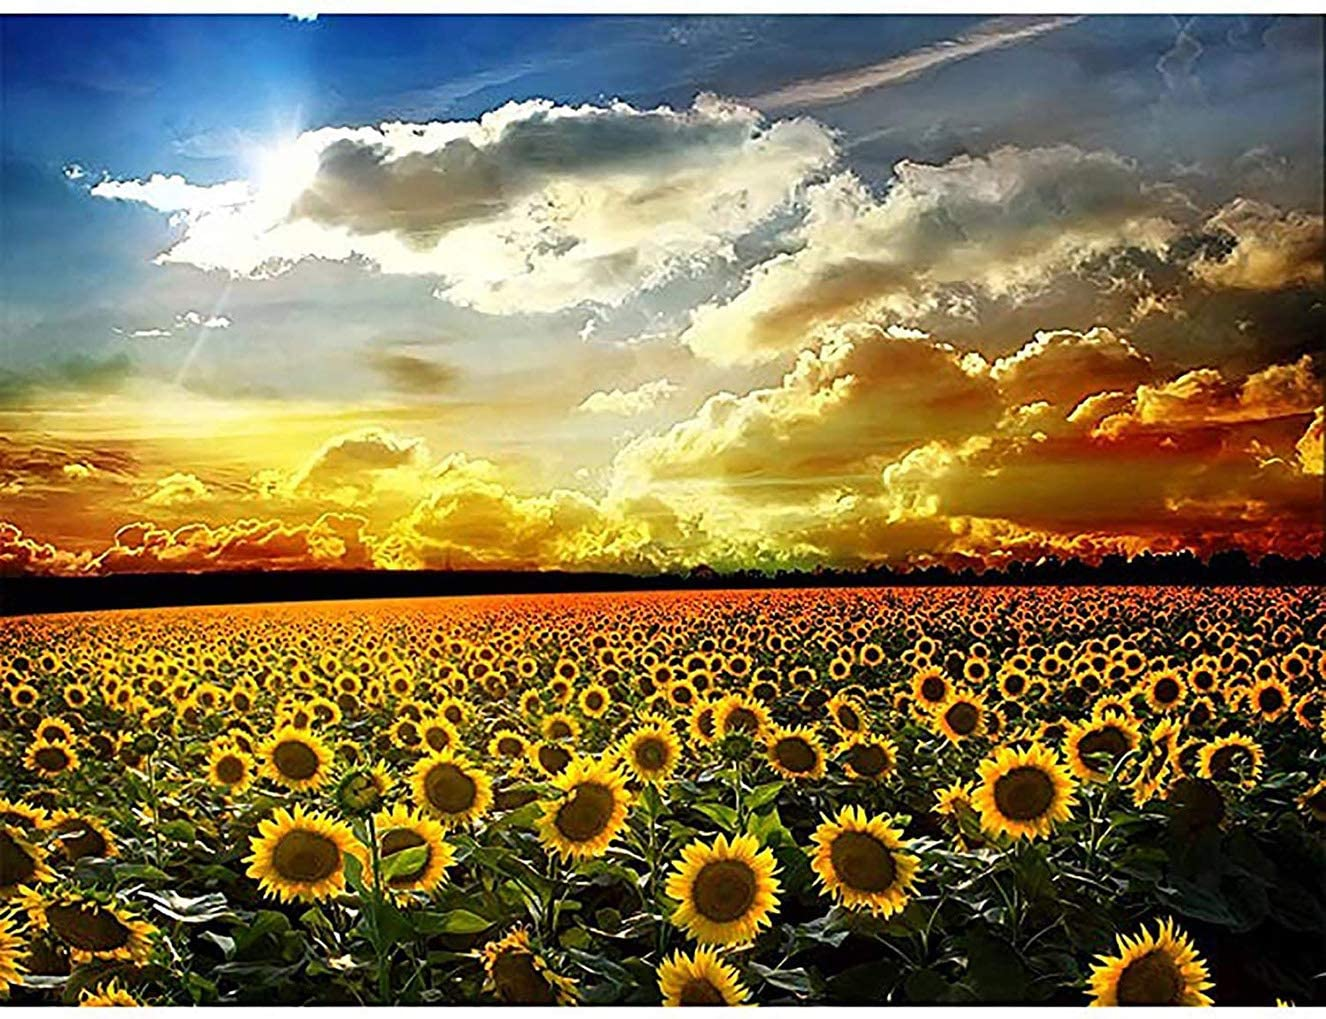 Bimkole DIY 5D Diamond Painting Kit Sunflowers Sky by Number Kits Paint with Diamonds Arts DIY for Home Decor, 16x20 inch(m4-506)